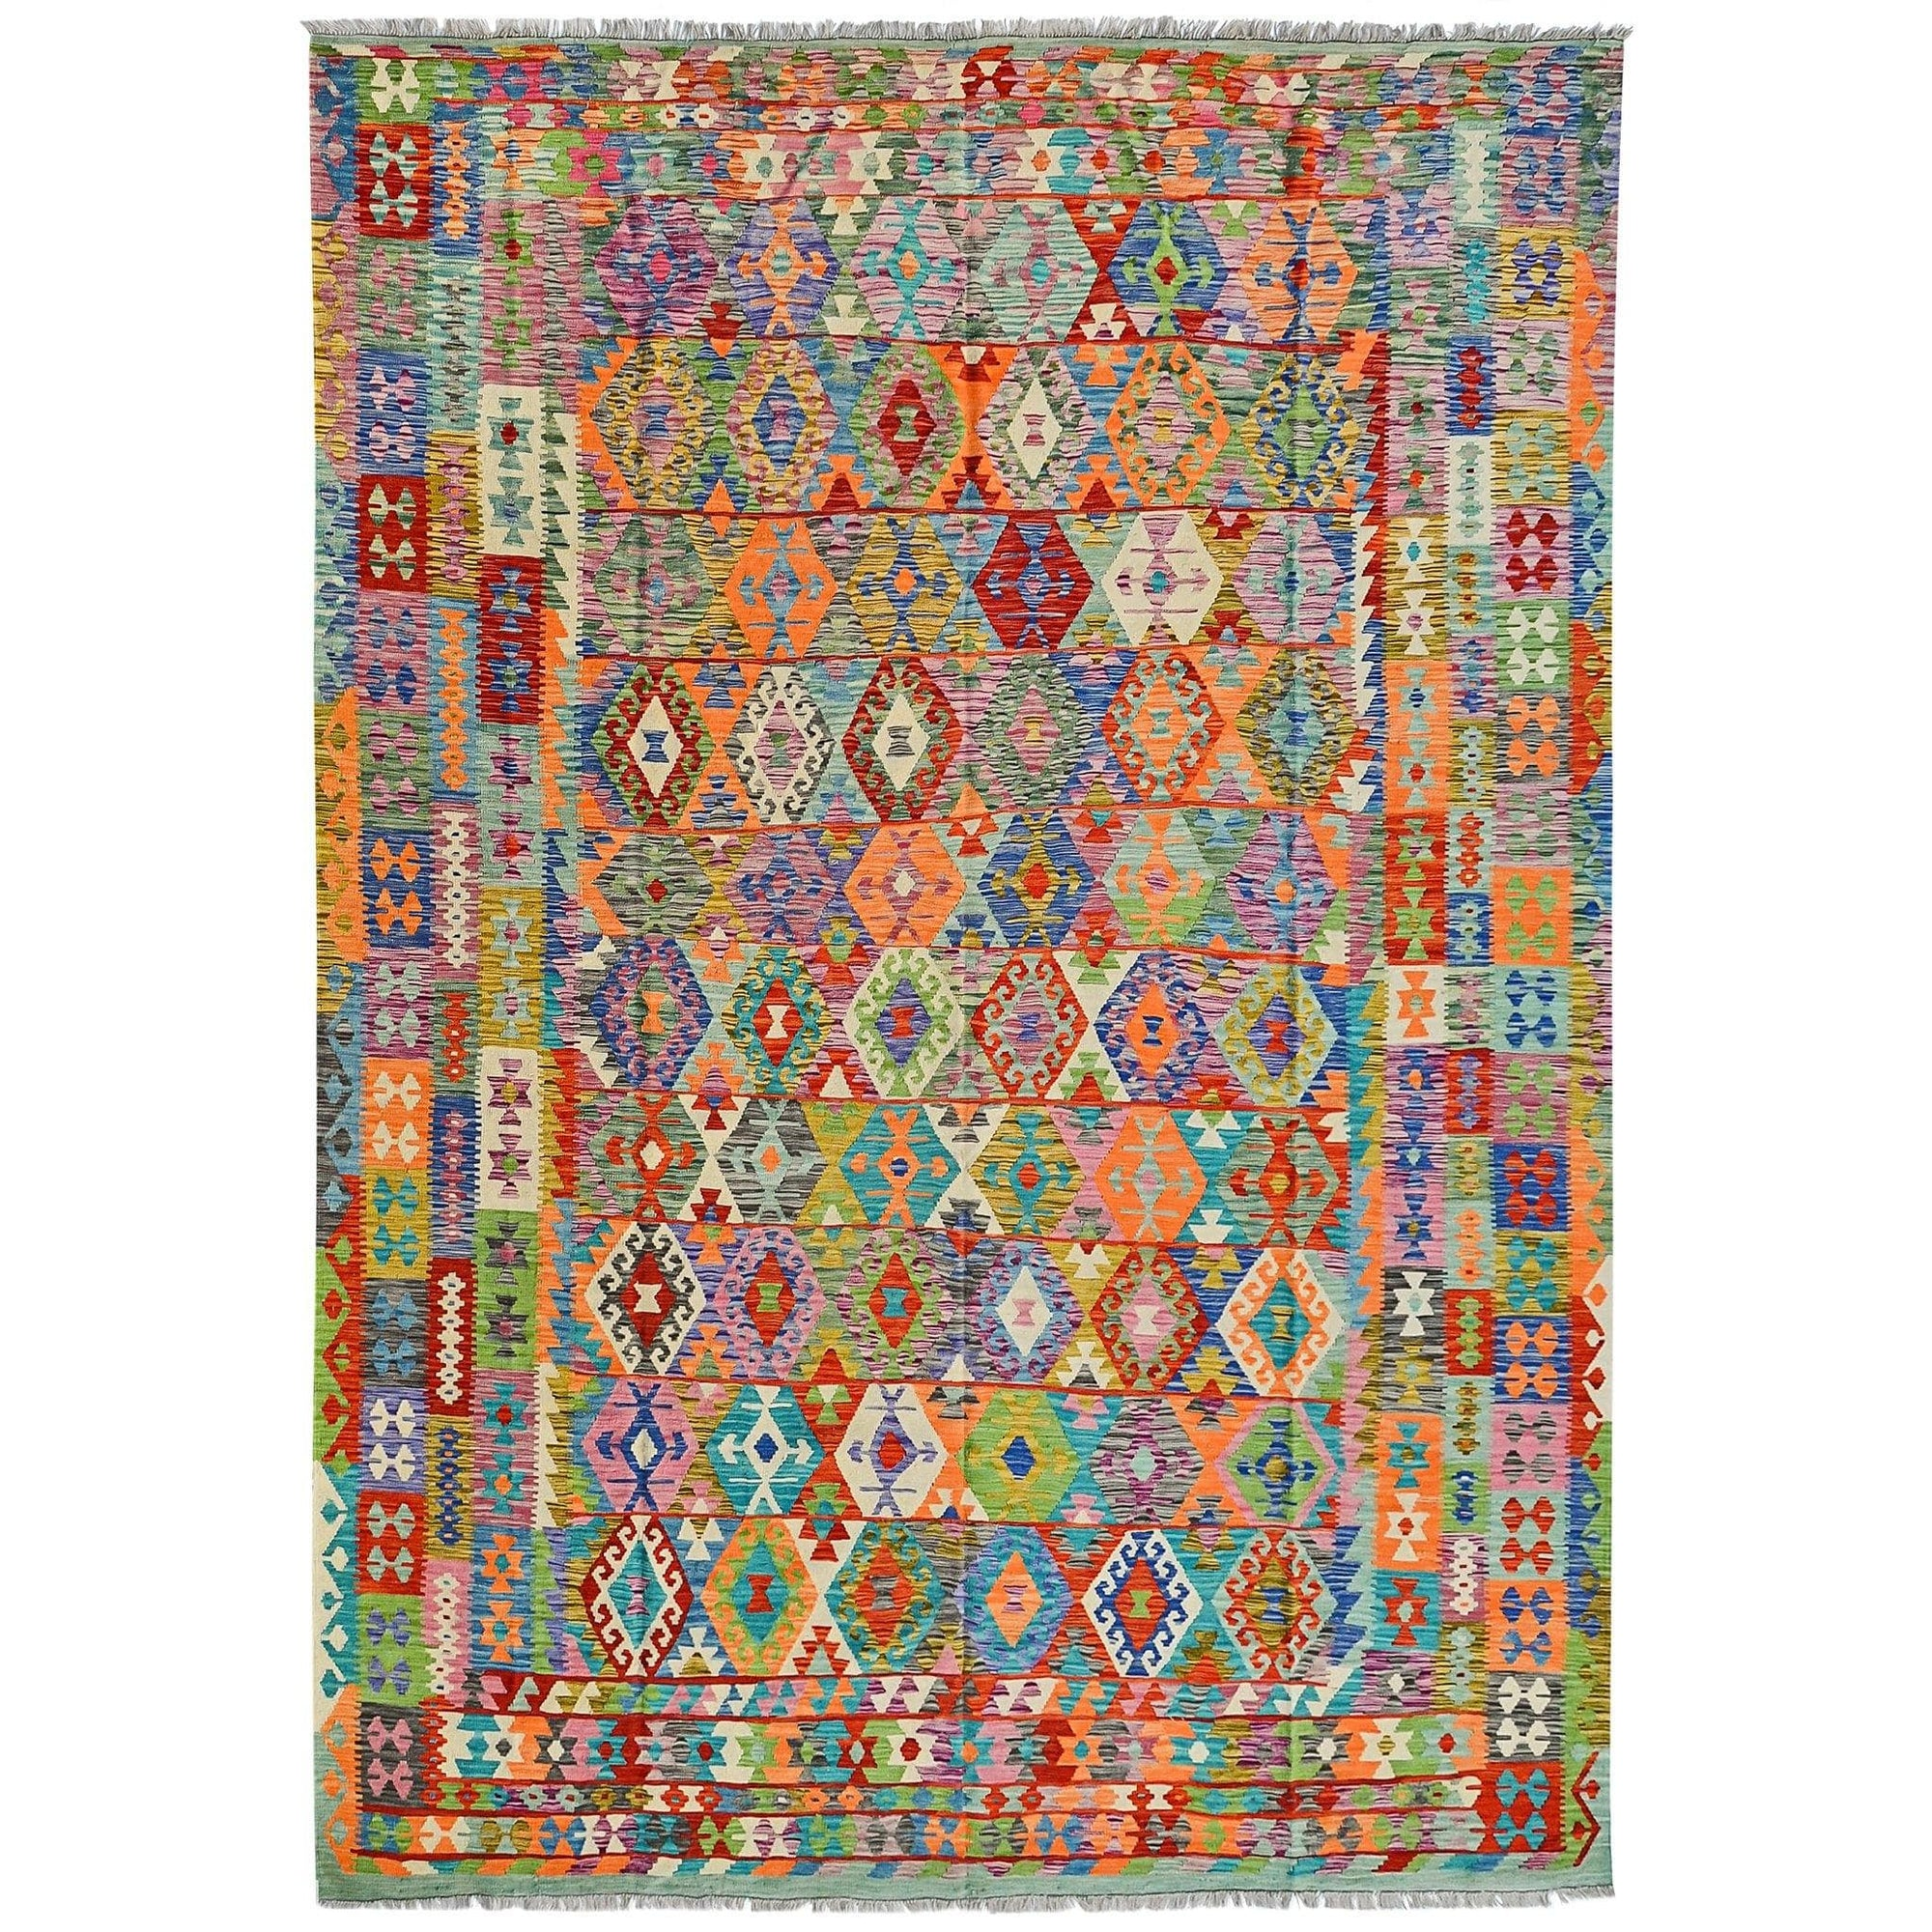 Extra Large Modern Hand-woven Chobi Wool Kilim Rug 311cm x 394cm Persian-Rug | House-of-Haghi | NewMarket | Auckland | NZ | Handmade Persian Rugs | Hand Knotted Persian Rugs